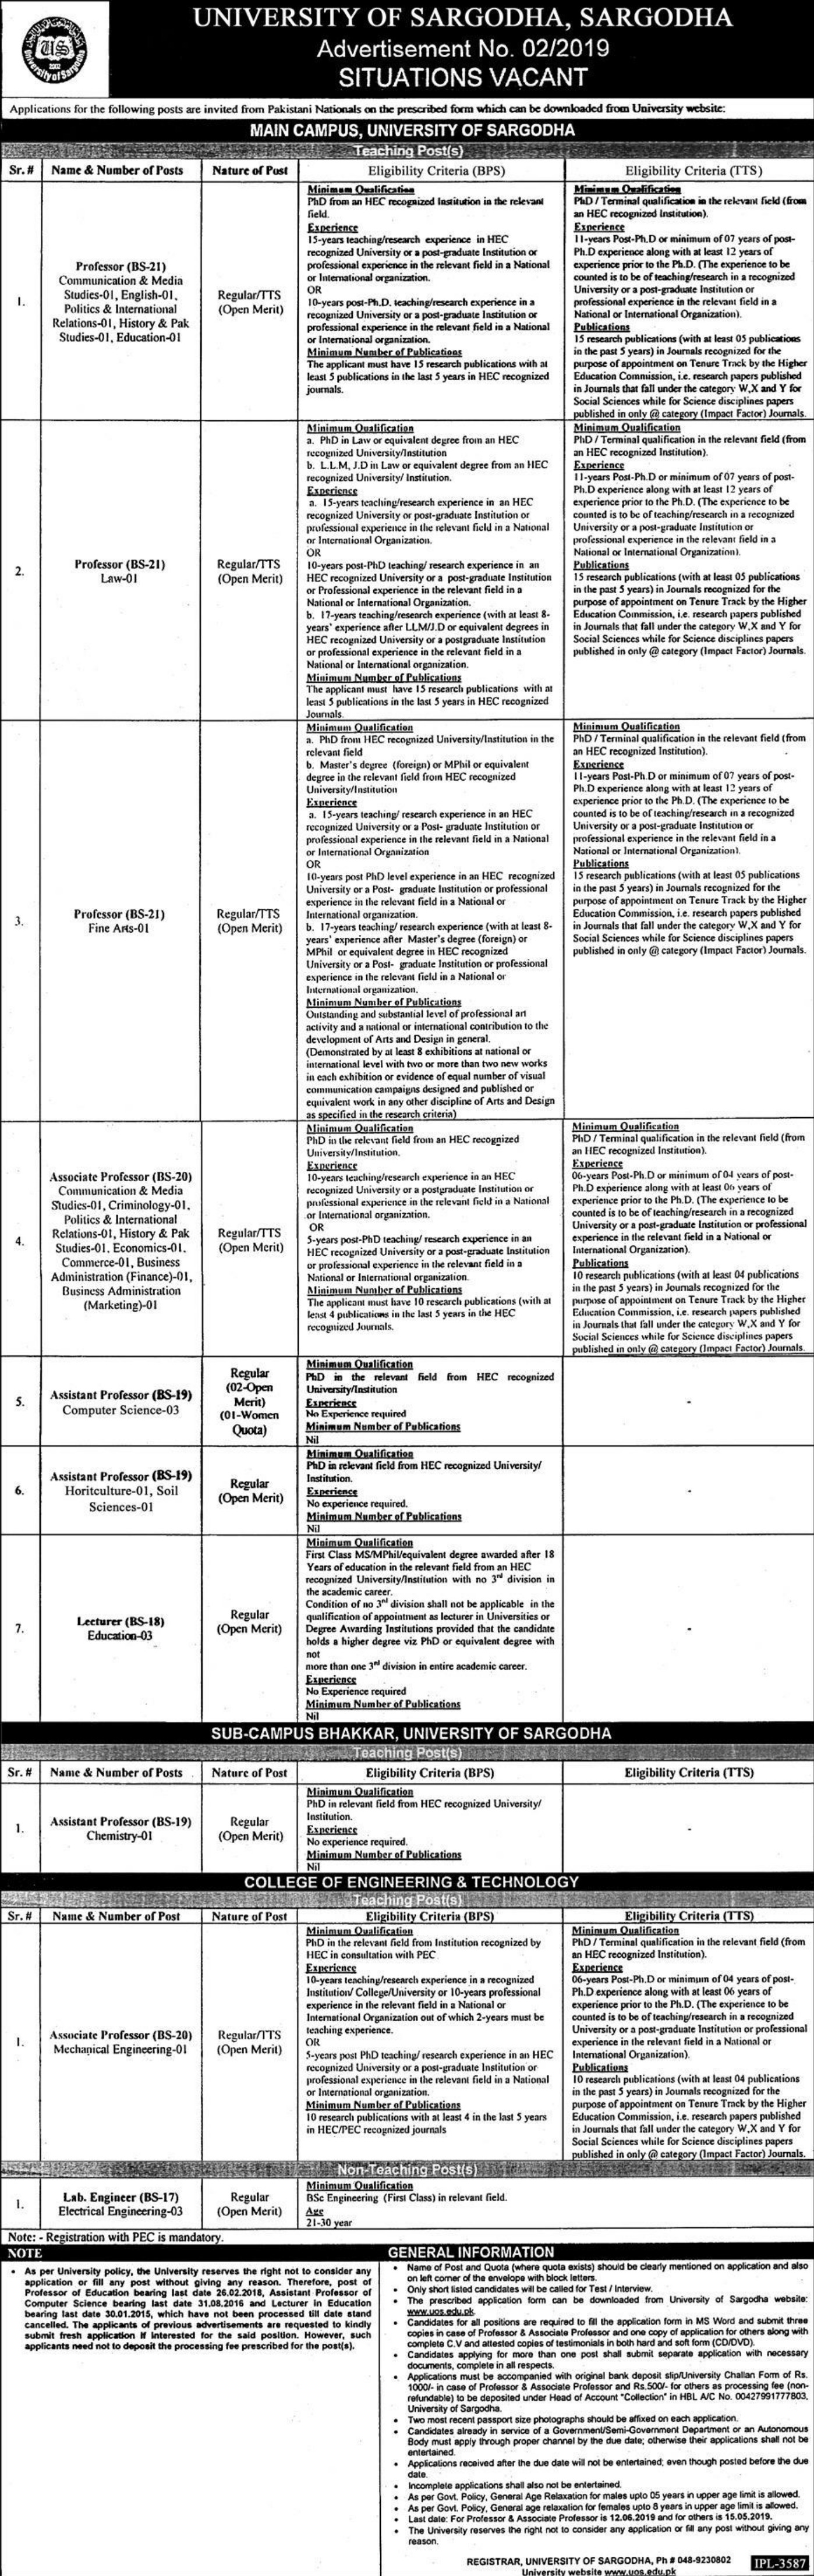 University of Sargodha Jobs 02-2019 Latest